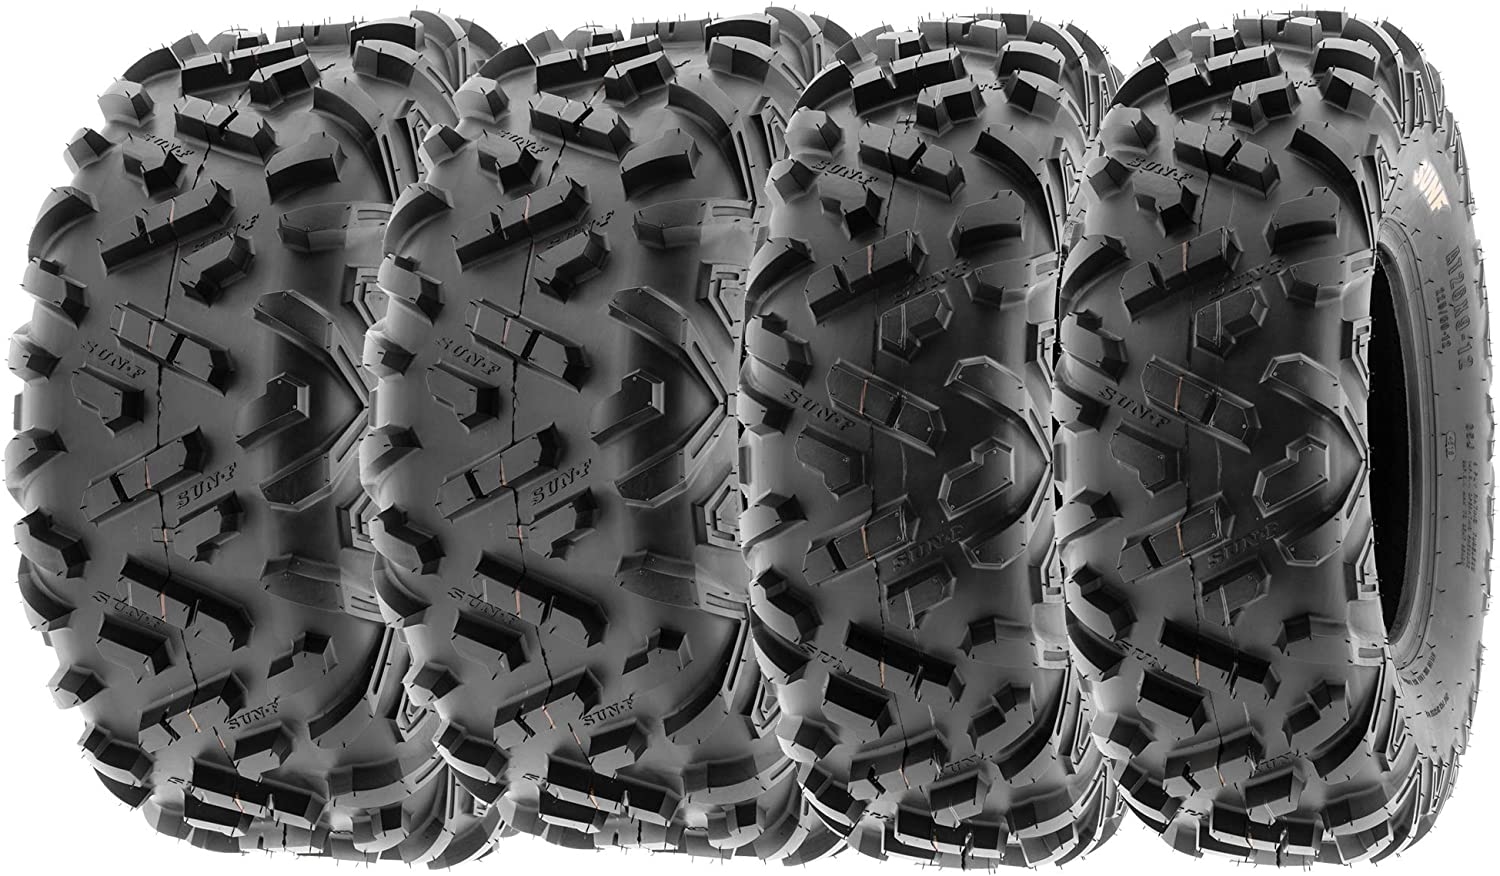 SunF 22x7-10 22x10-9 ATV UTV Tires Tubeless Mail order cheap II PR 6 A051 Spring new work one after another POWER